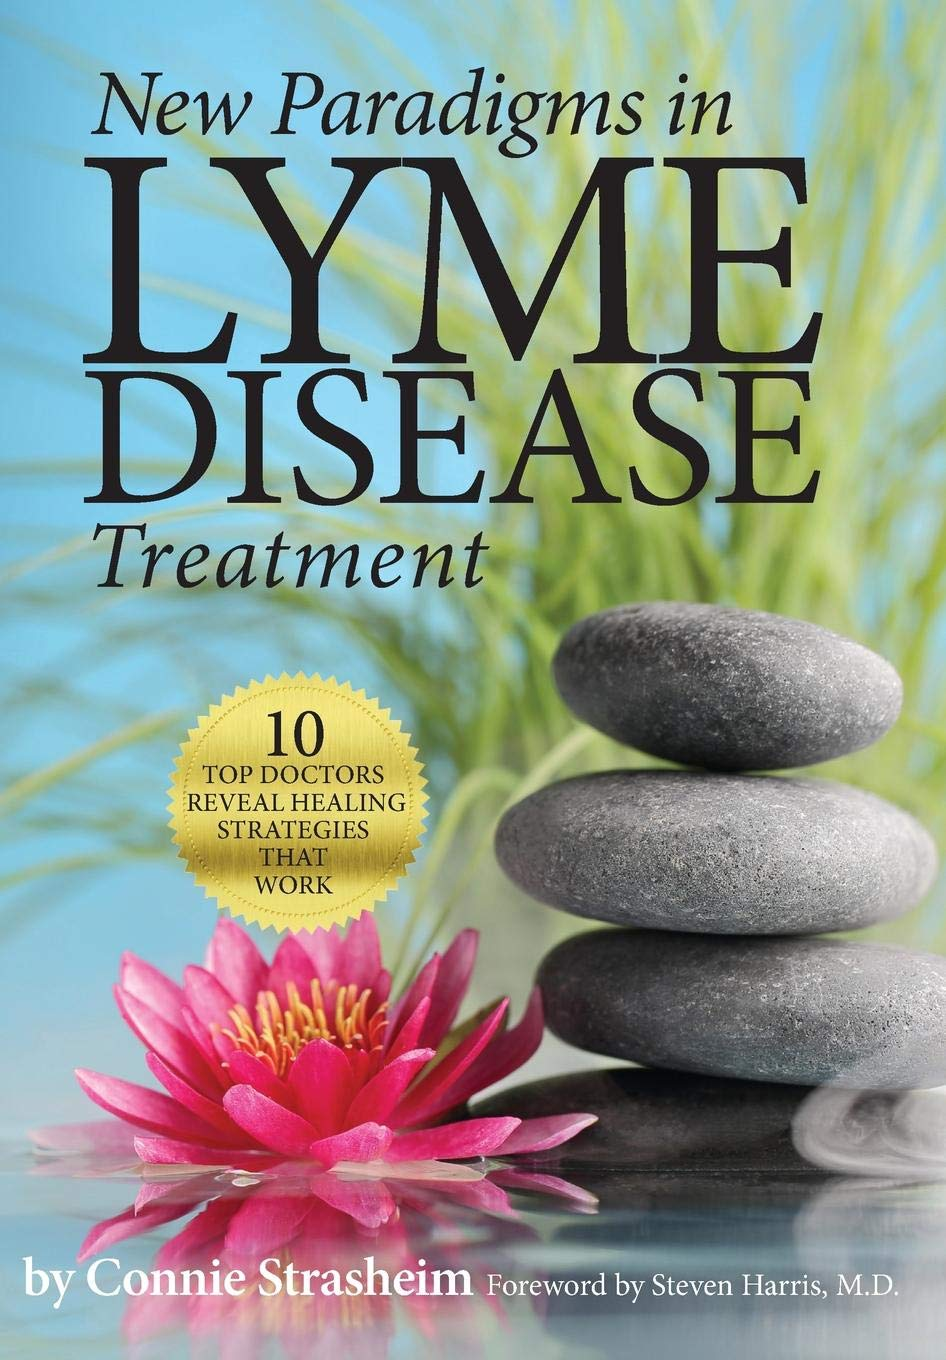 New Paradigms in Lyme Disease Treatment: 10 Top Doctors